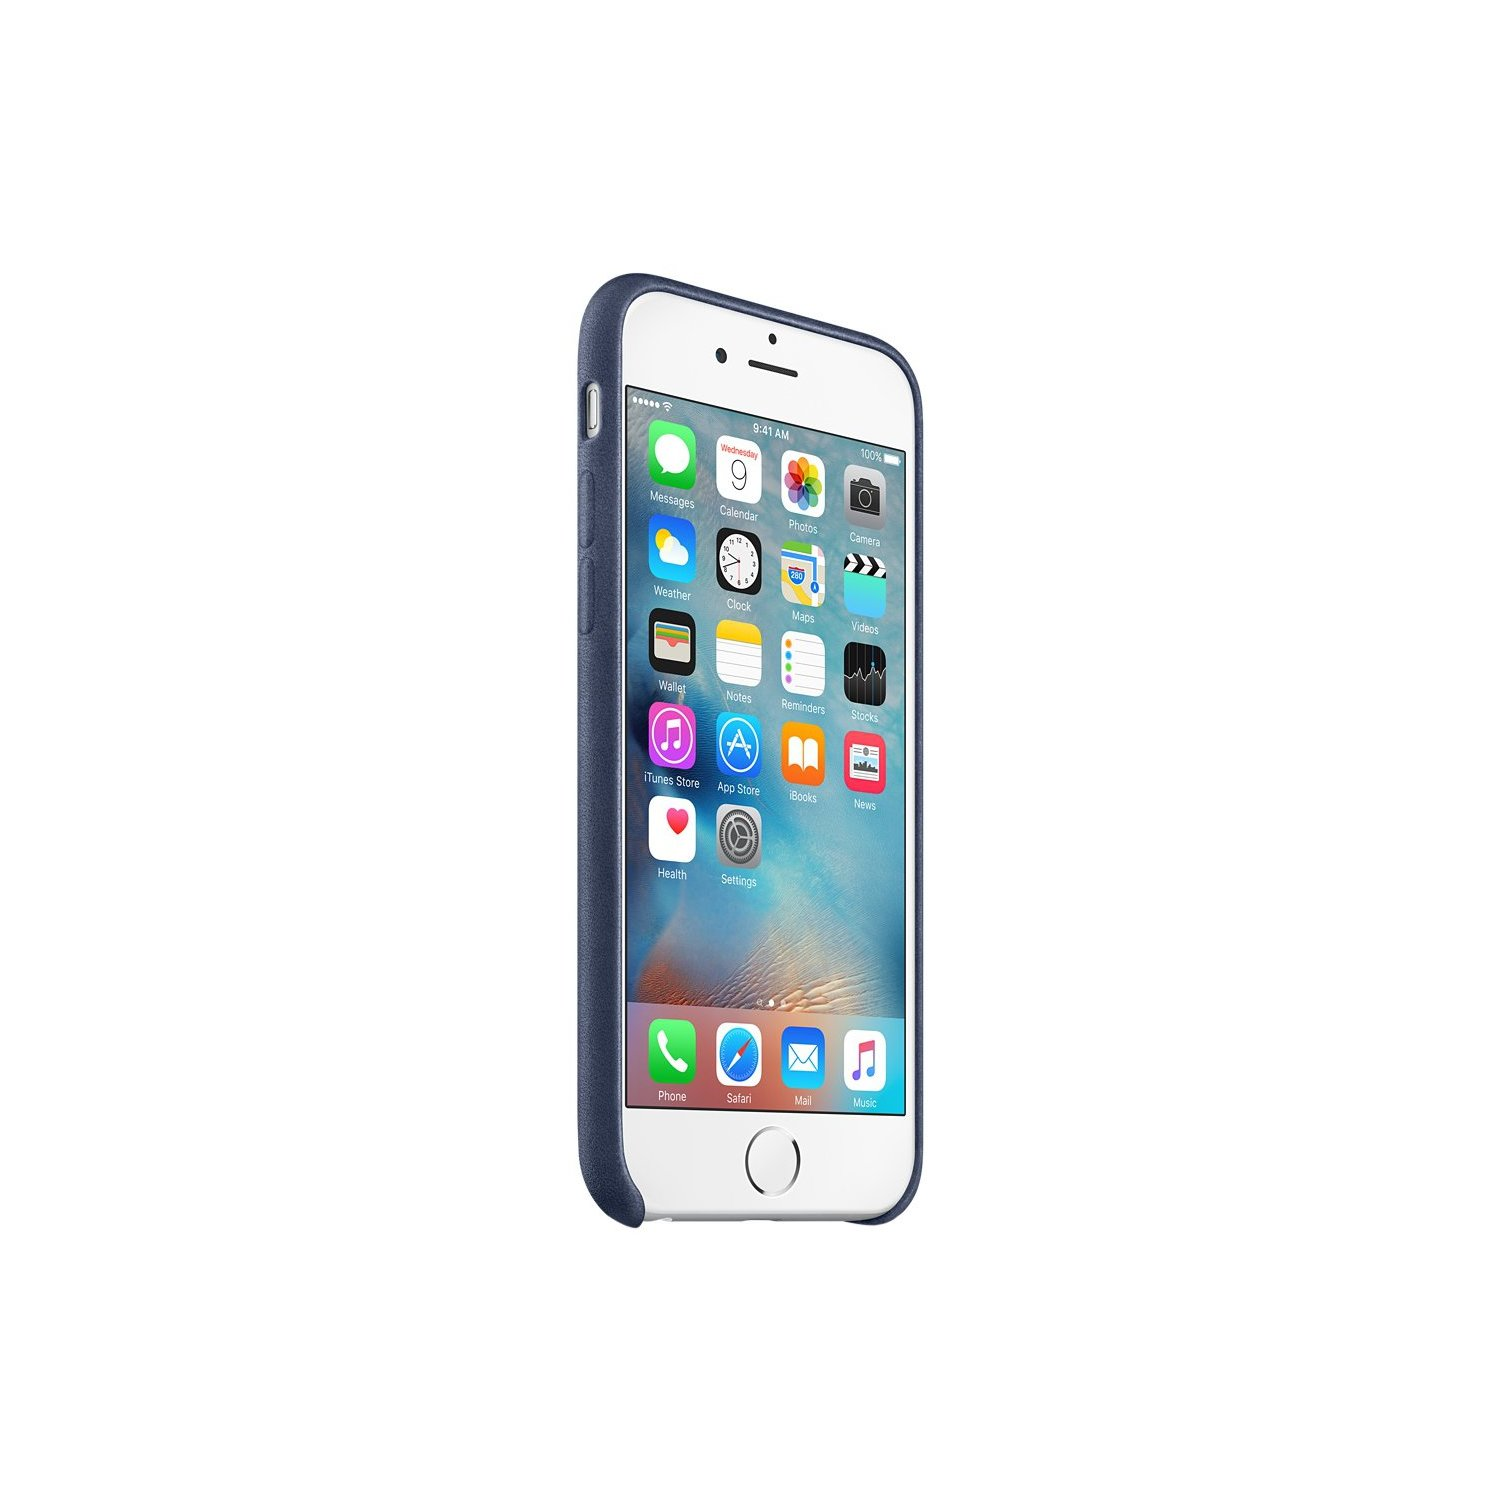 Skórzane etui APPLE do iPhone 6 Plus/6s Plus Nocny błękit MKXD2ZM/A